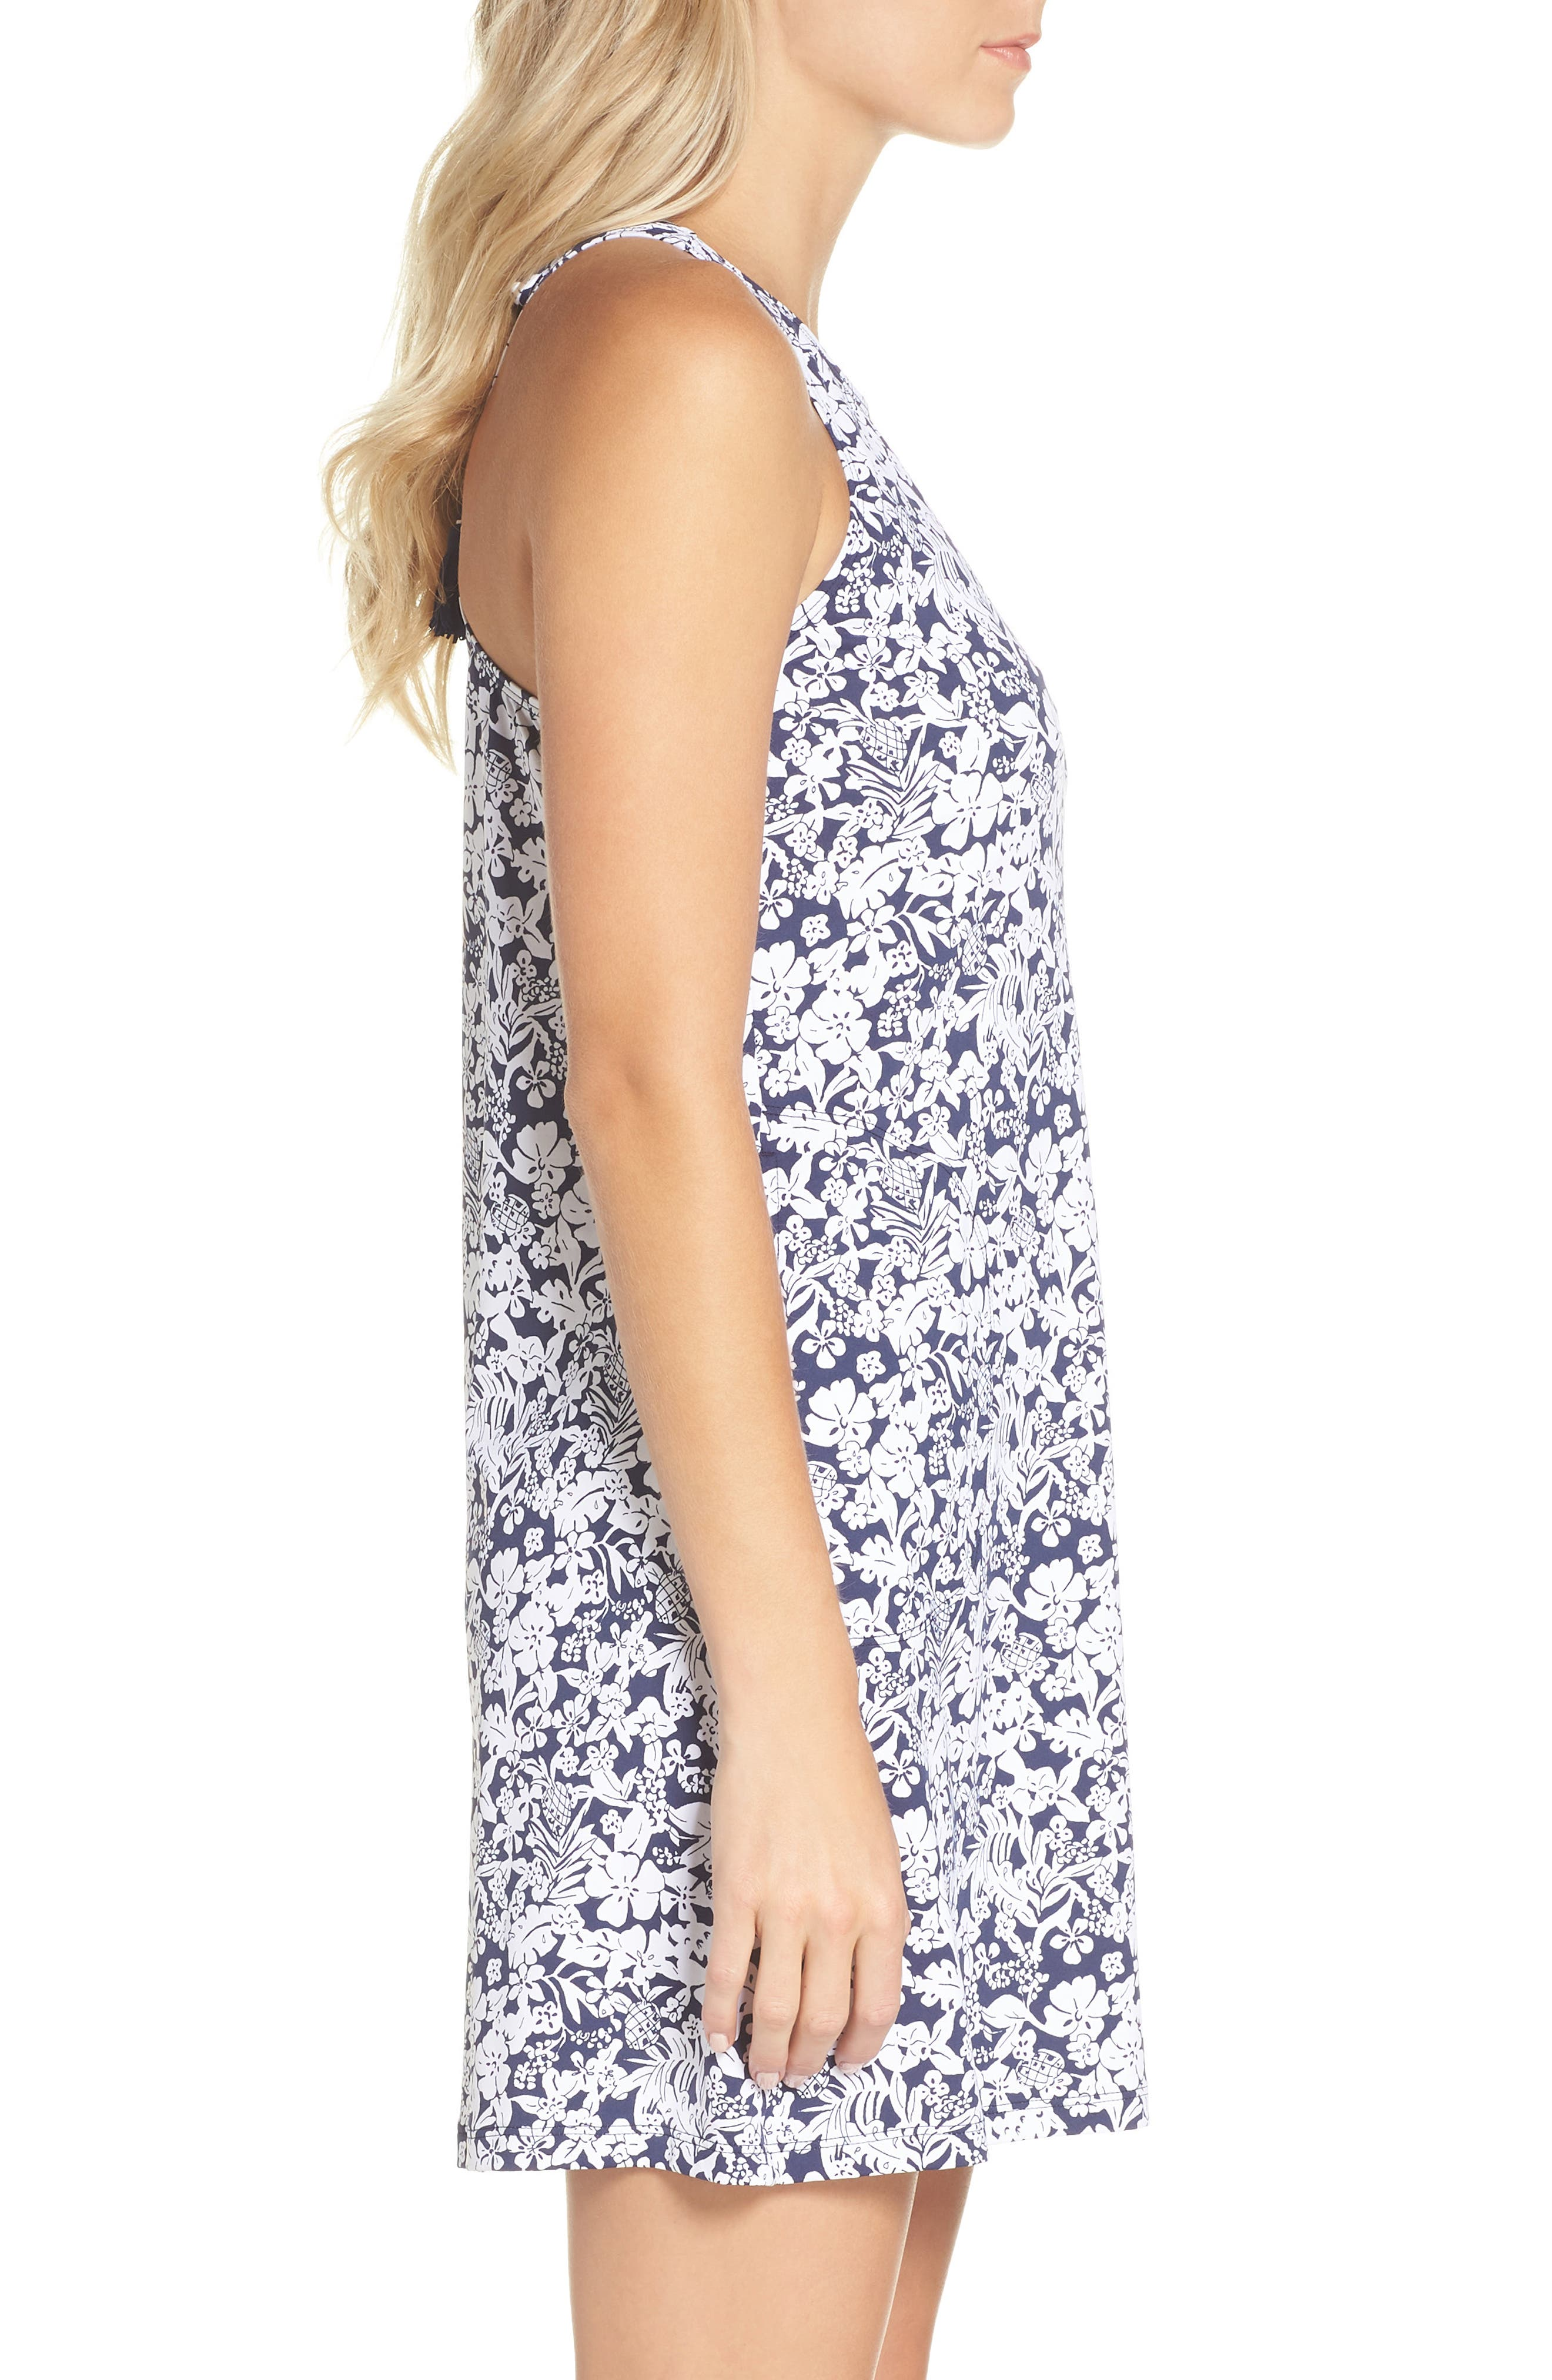 Riviera Tiles Cover-Up Dress,                             Alternate thumbnail 3, color,                             Mare Blue